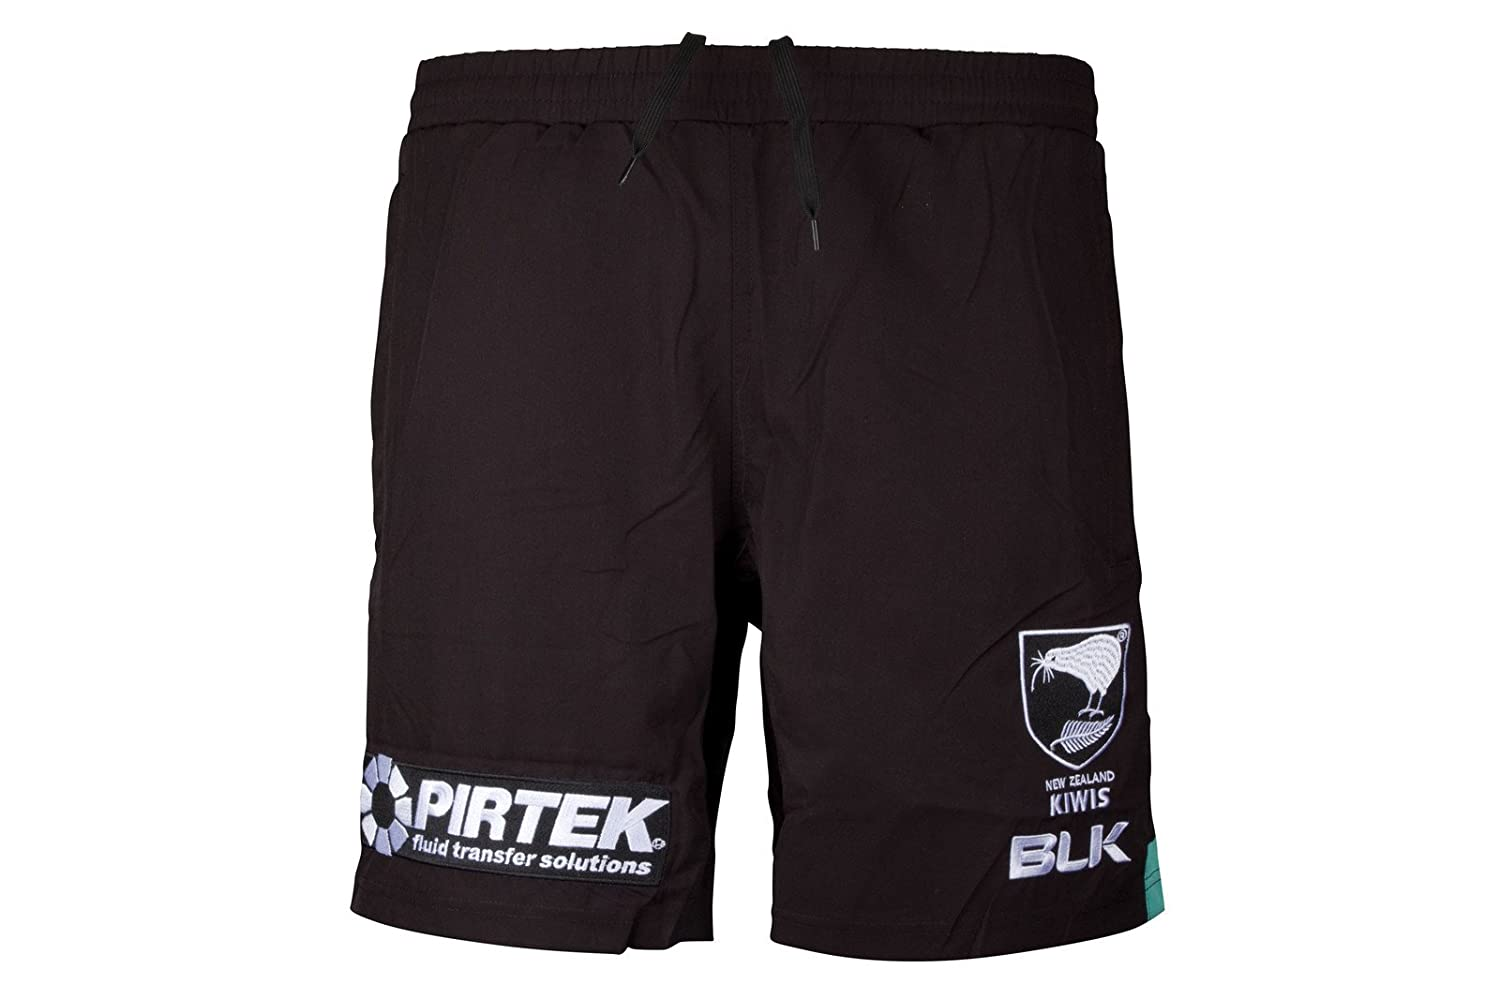 "New Zealand Kiwis Rugby League 8 Gym Short 2016"" BLK Sport"